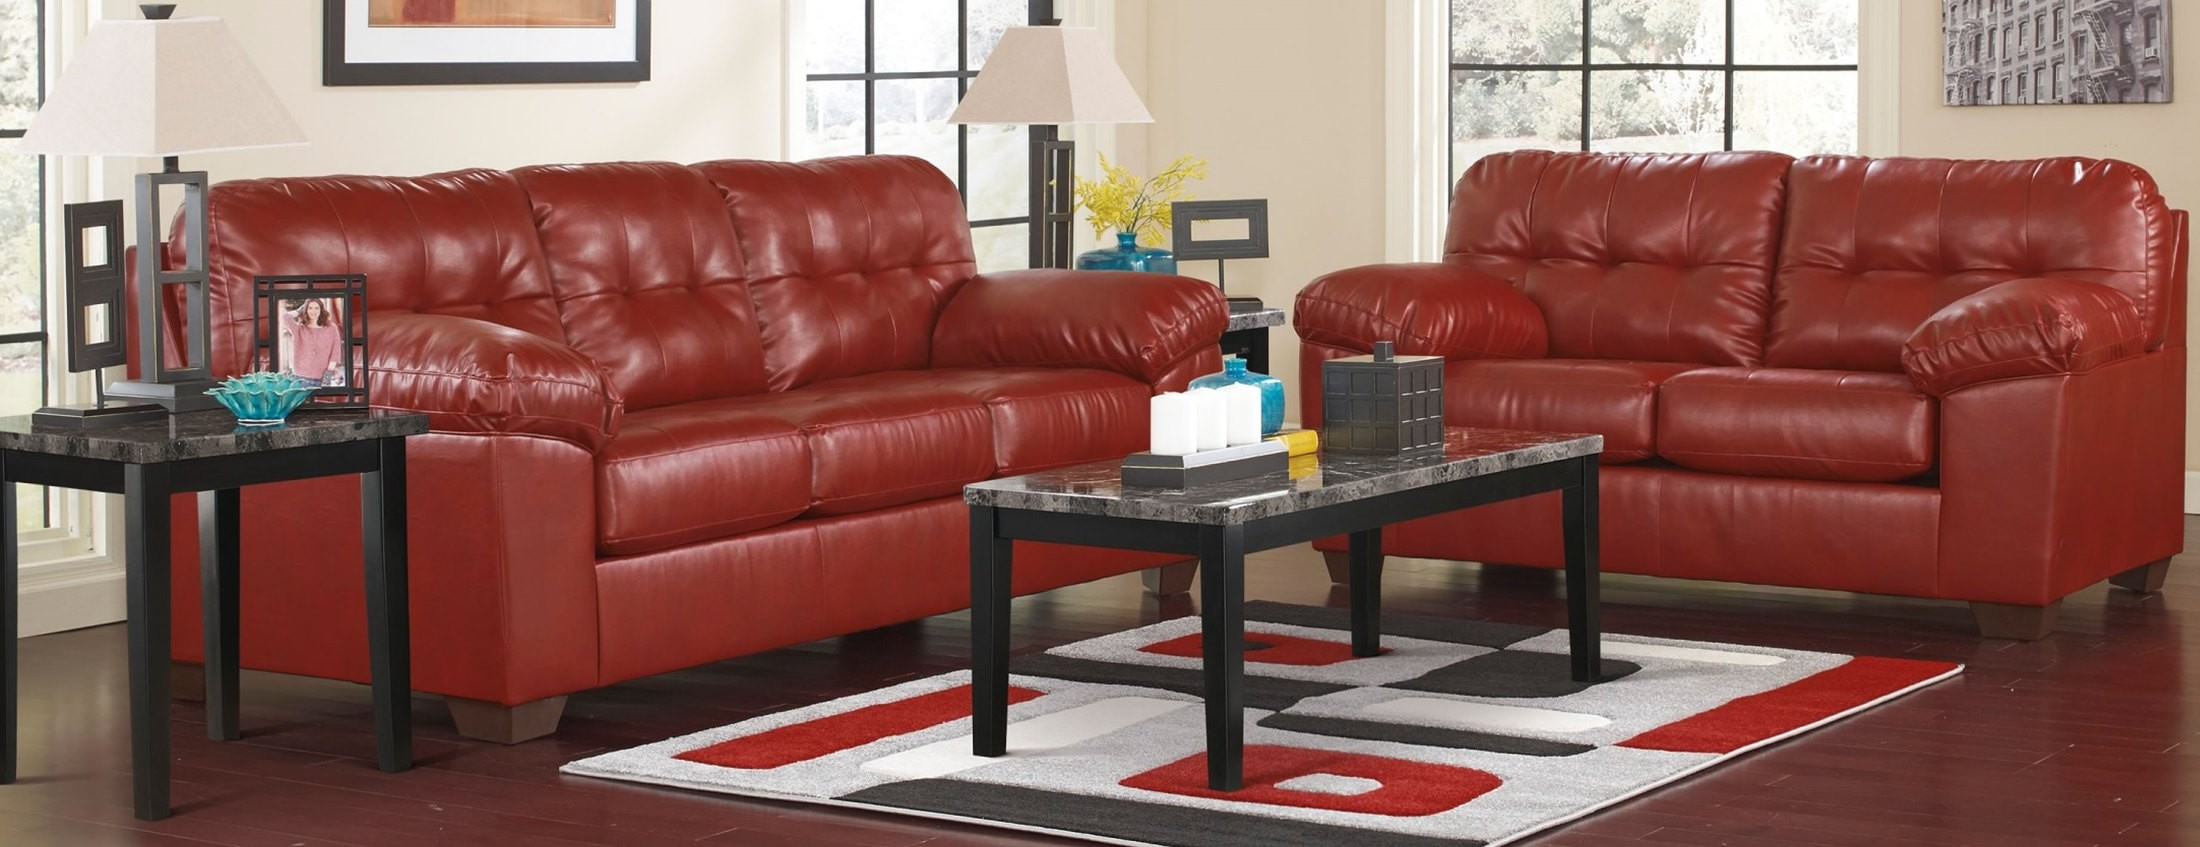 Alliston durablend salsa living room set from ashley for 14th avenue salon albany oregon